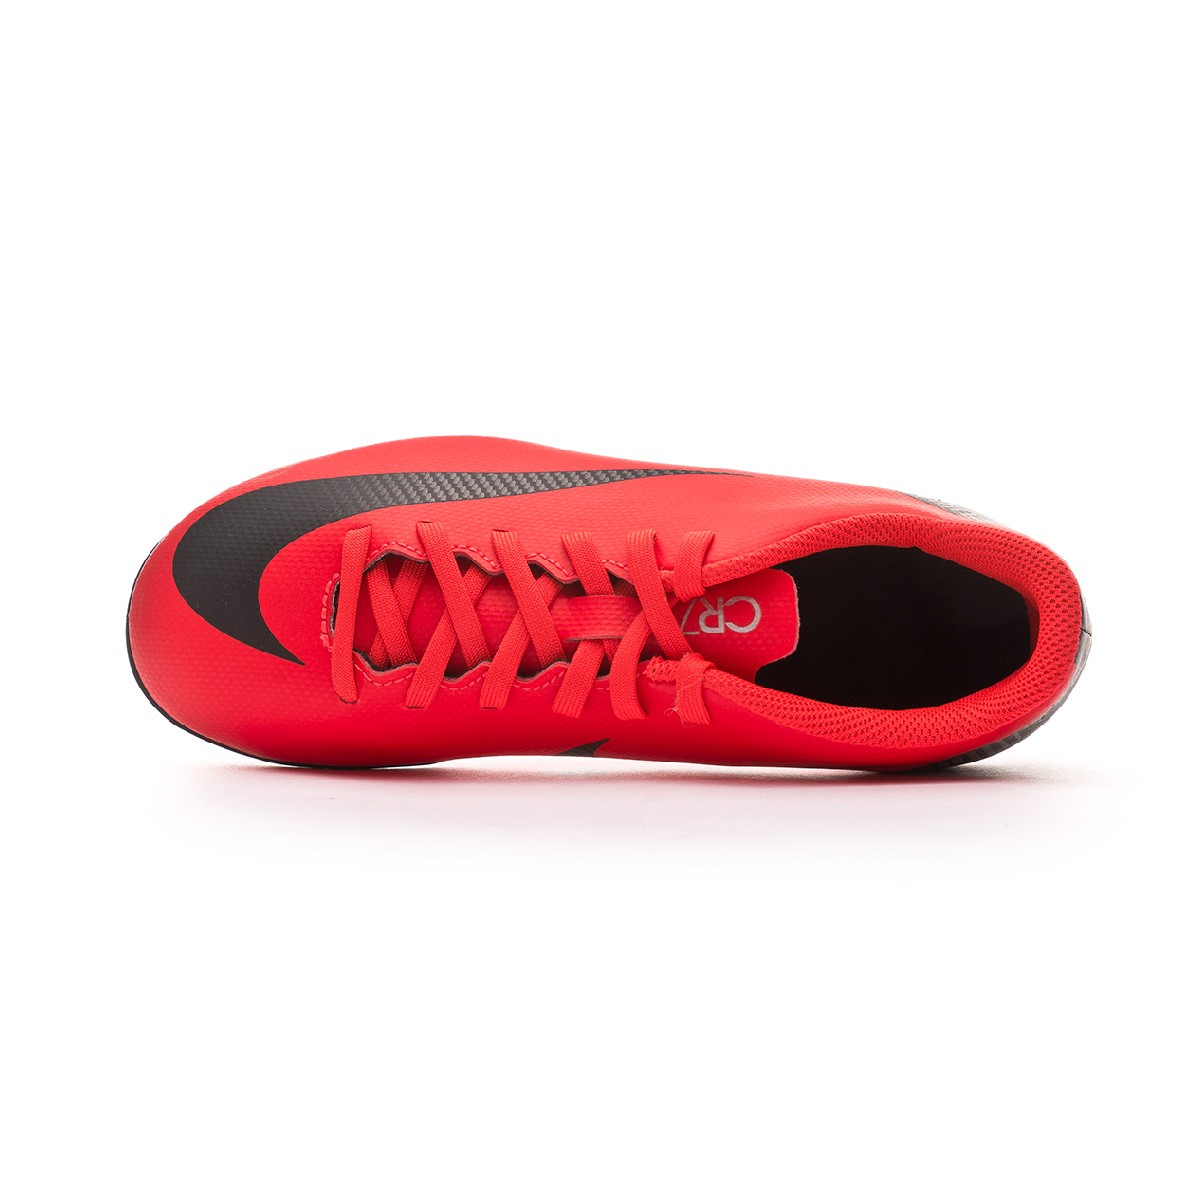 Bota Cr7 Mg Chrome Xii Niño Mercurial Vapor Bright Black Crimson Club QrdCxBeWEo